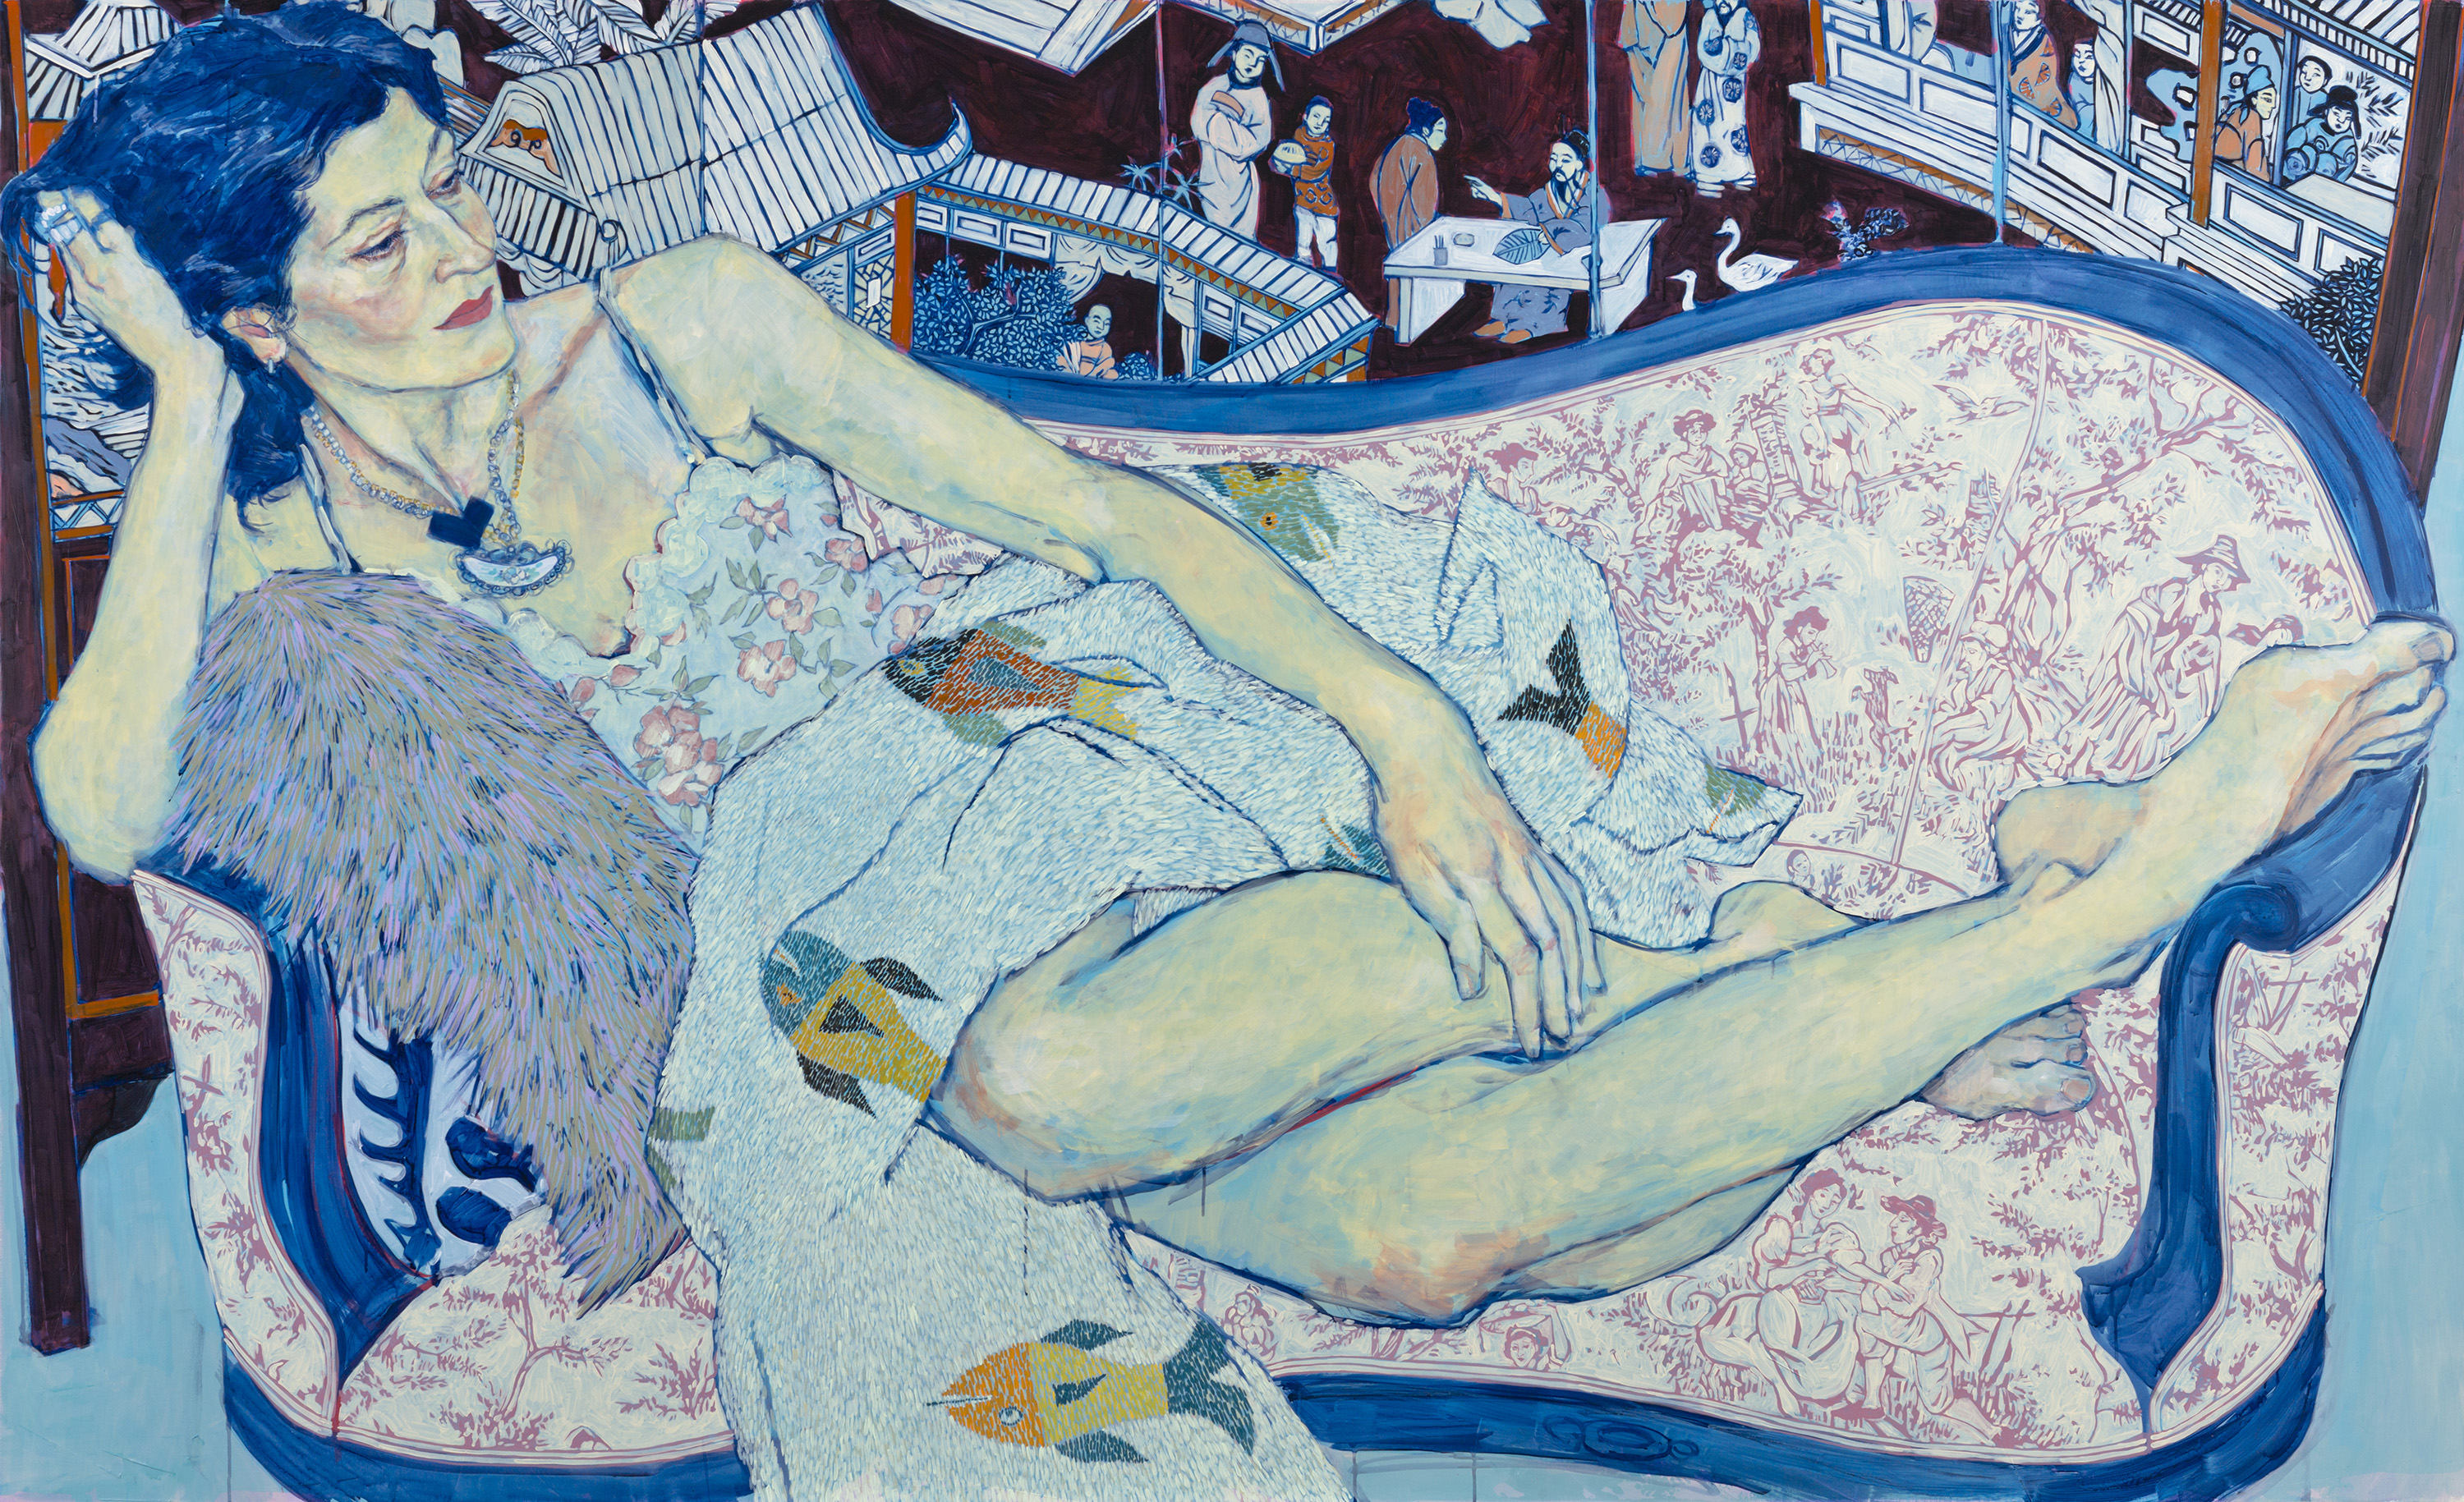 <i>The Genres: Portraiture featuring Hope Gangloff</i>, installation view at the Eli and Edythe Broad Art Museum at Michigan State University, 2013. Photo: Eat Pomegranate Photography